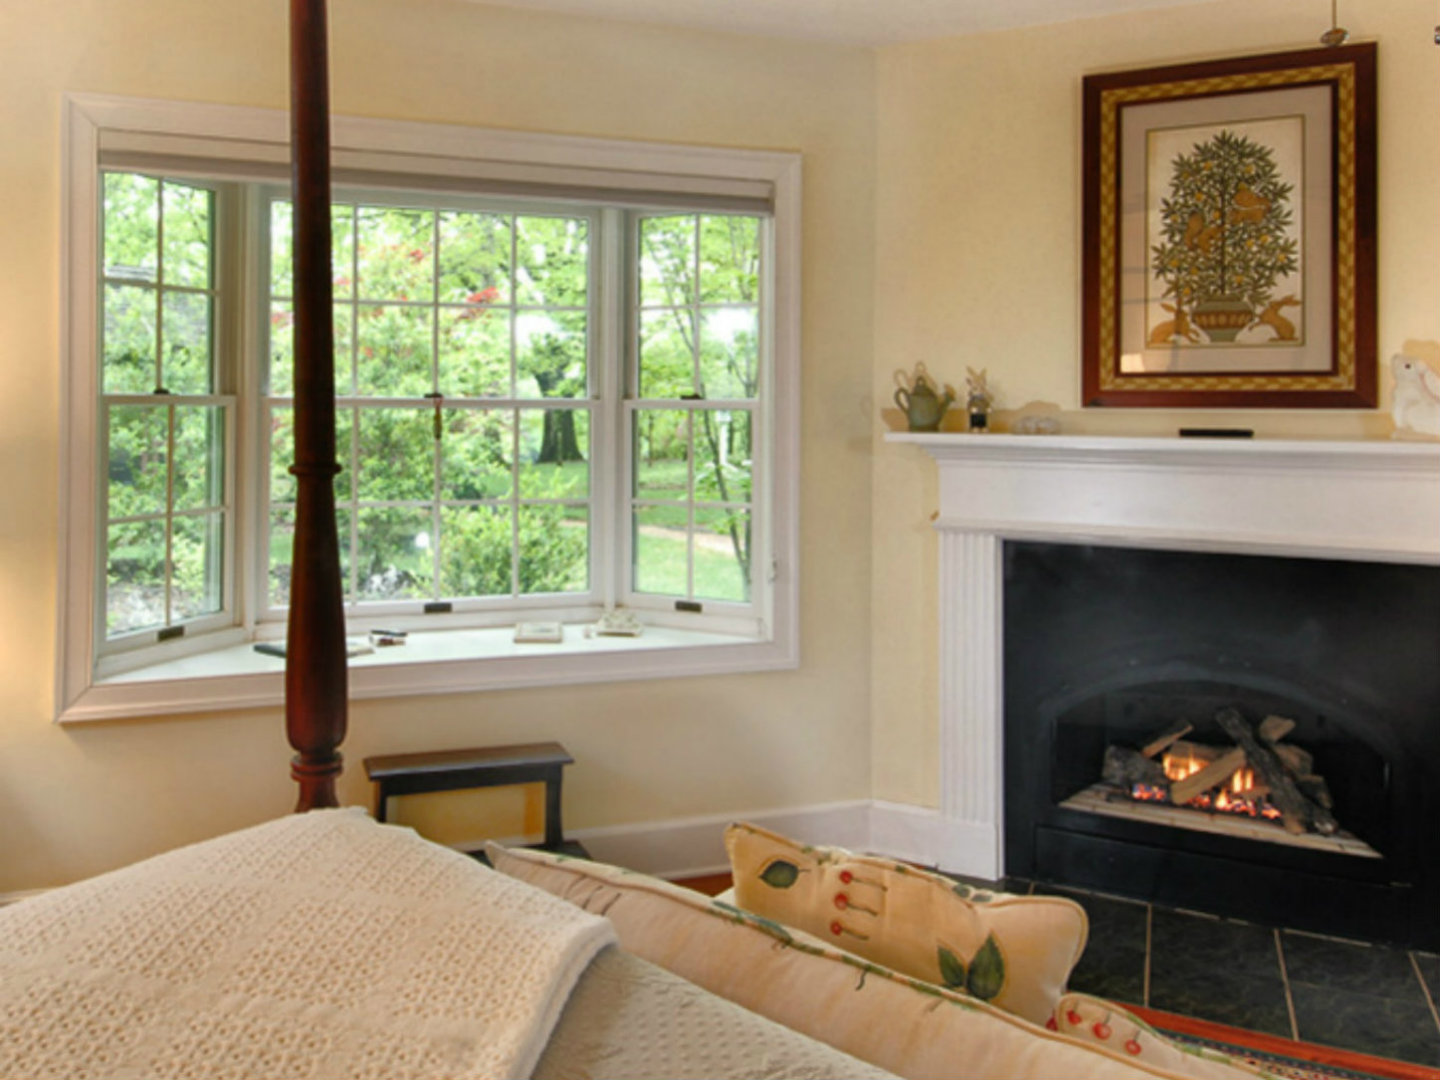 A living room with a fireplace and a large window at Foxfield Inn.